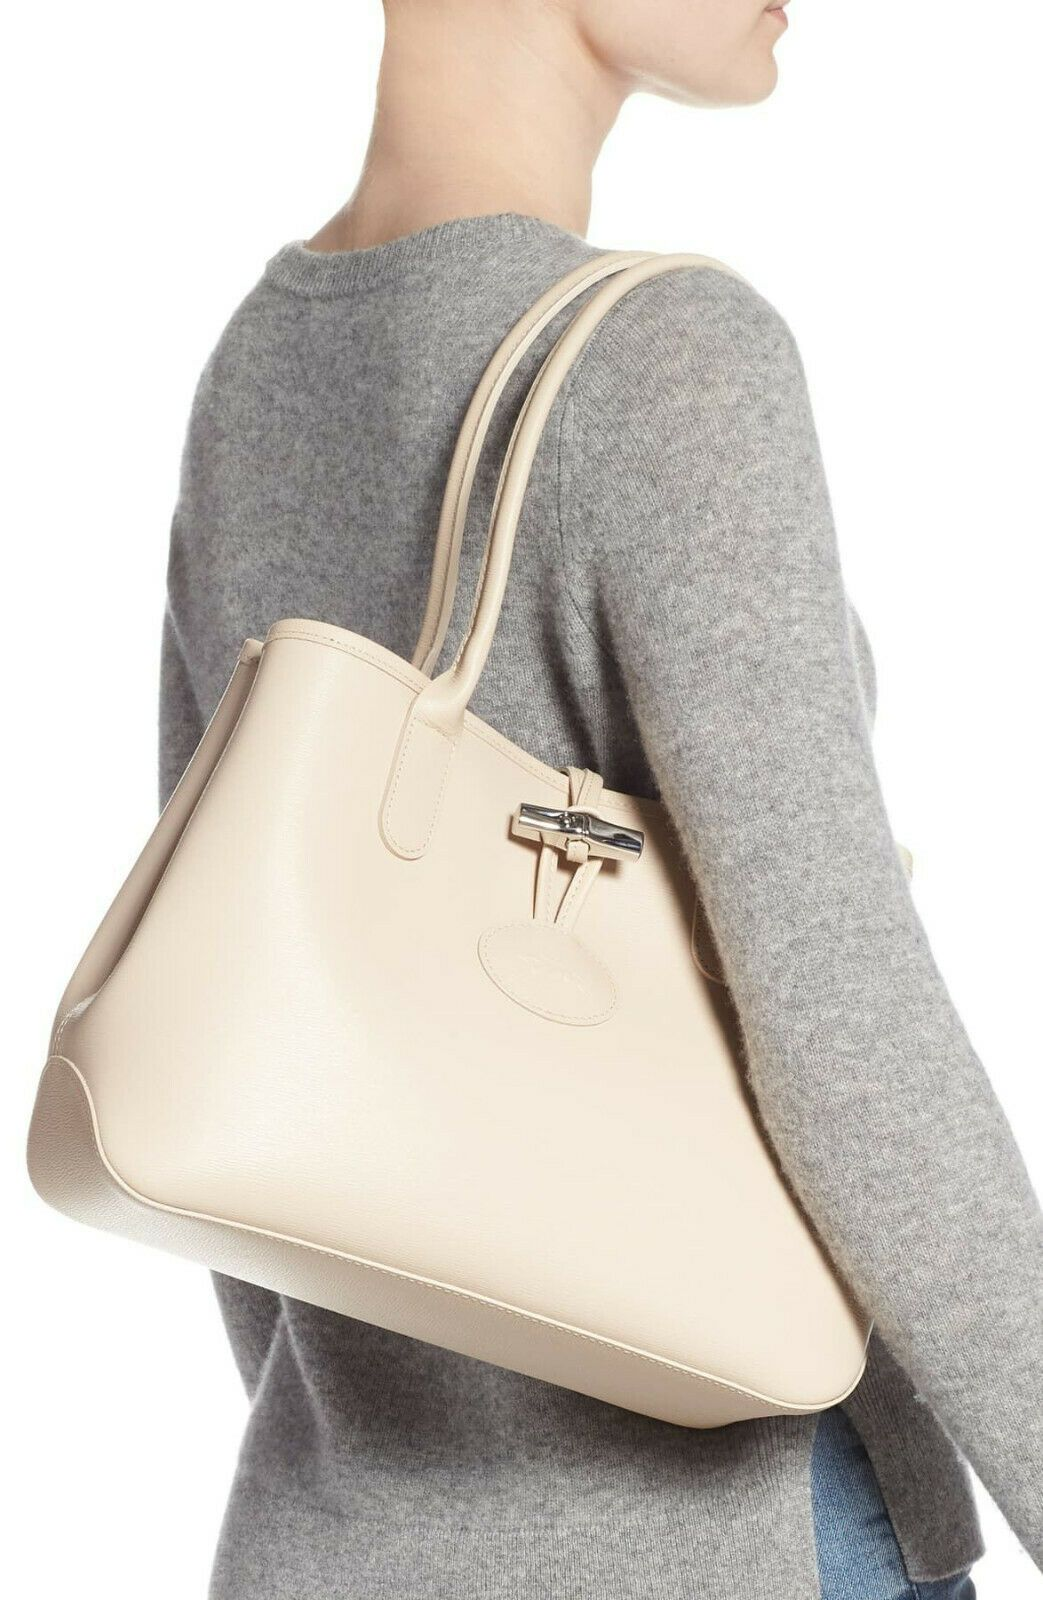 NWT LONGCHAMP Roseau Small Leather Shoulder Tote IVORY BEIGE ...